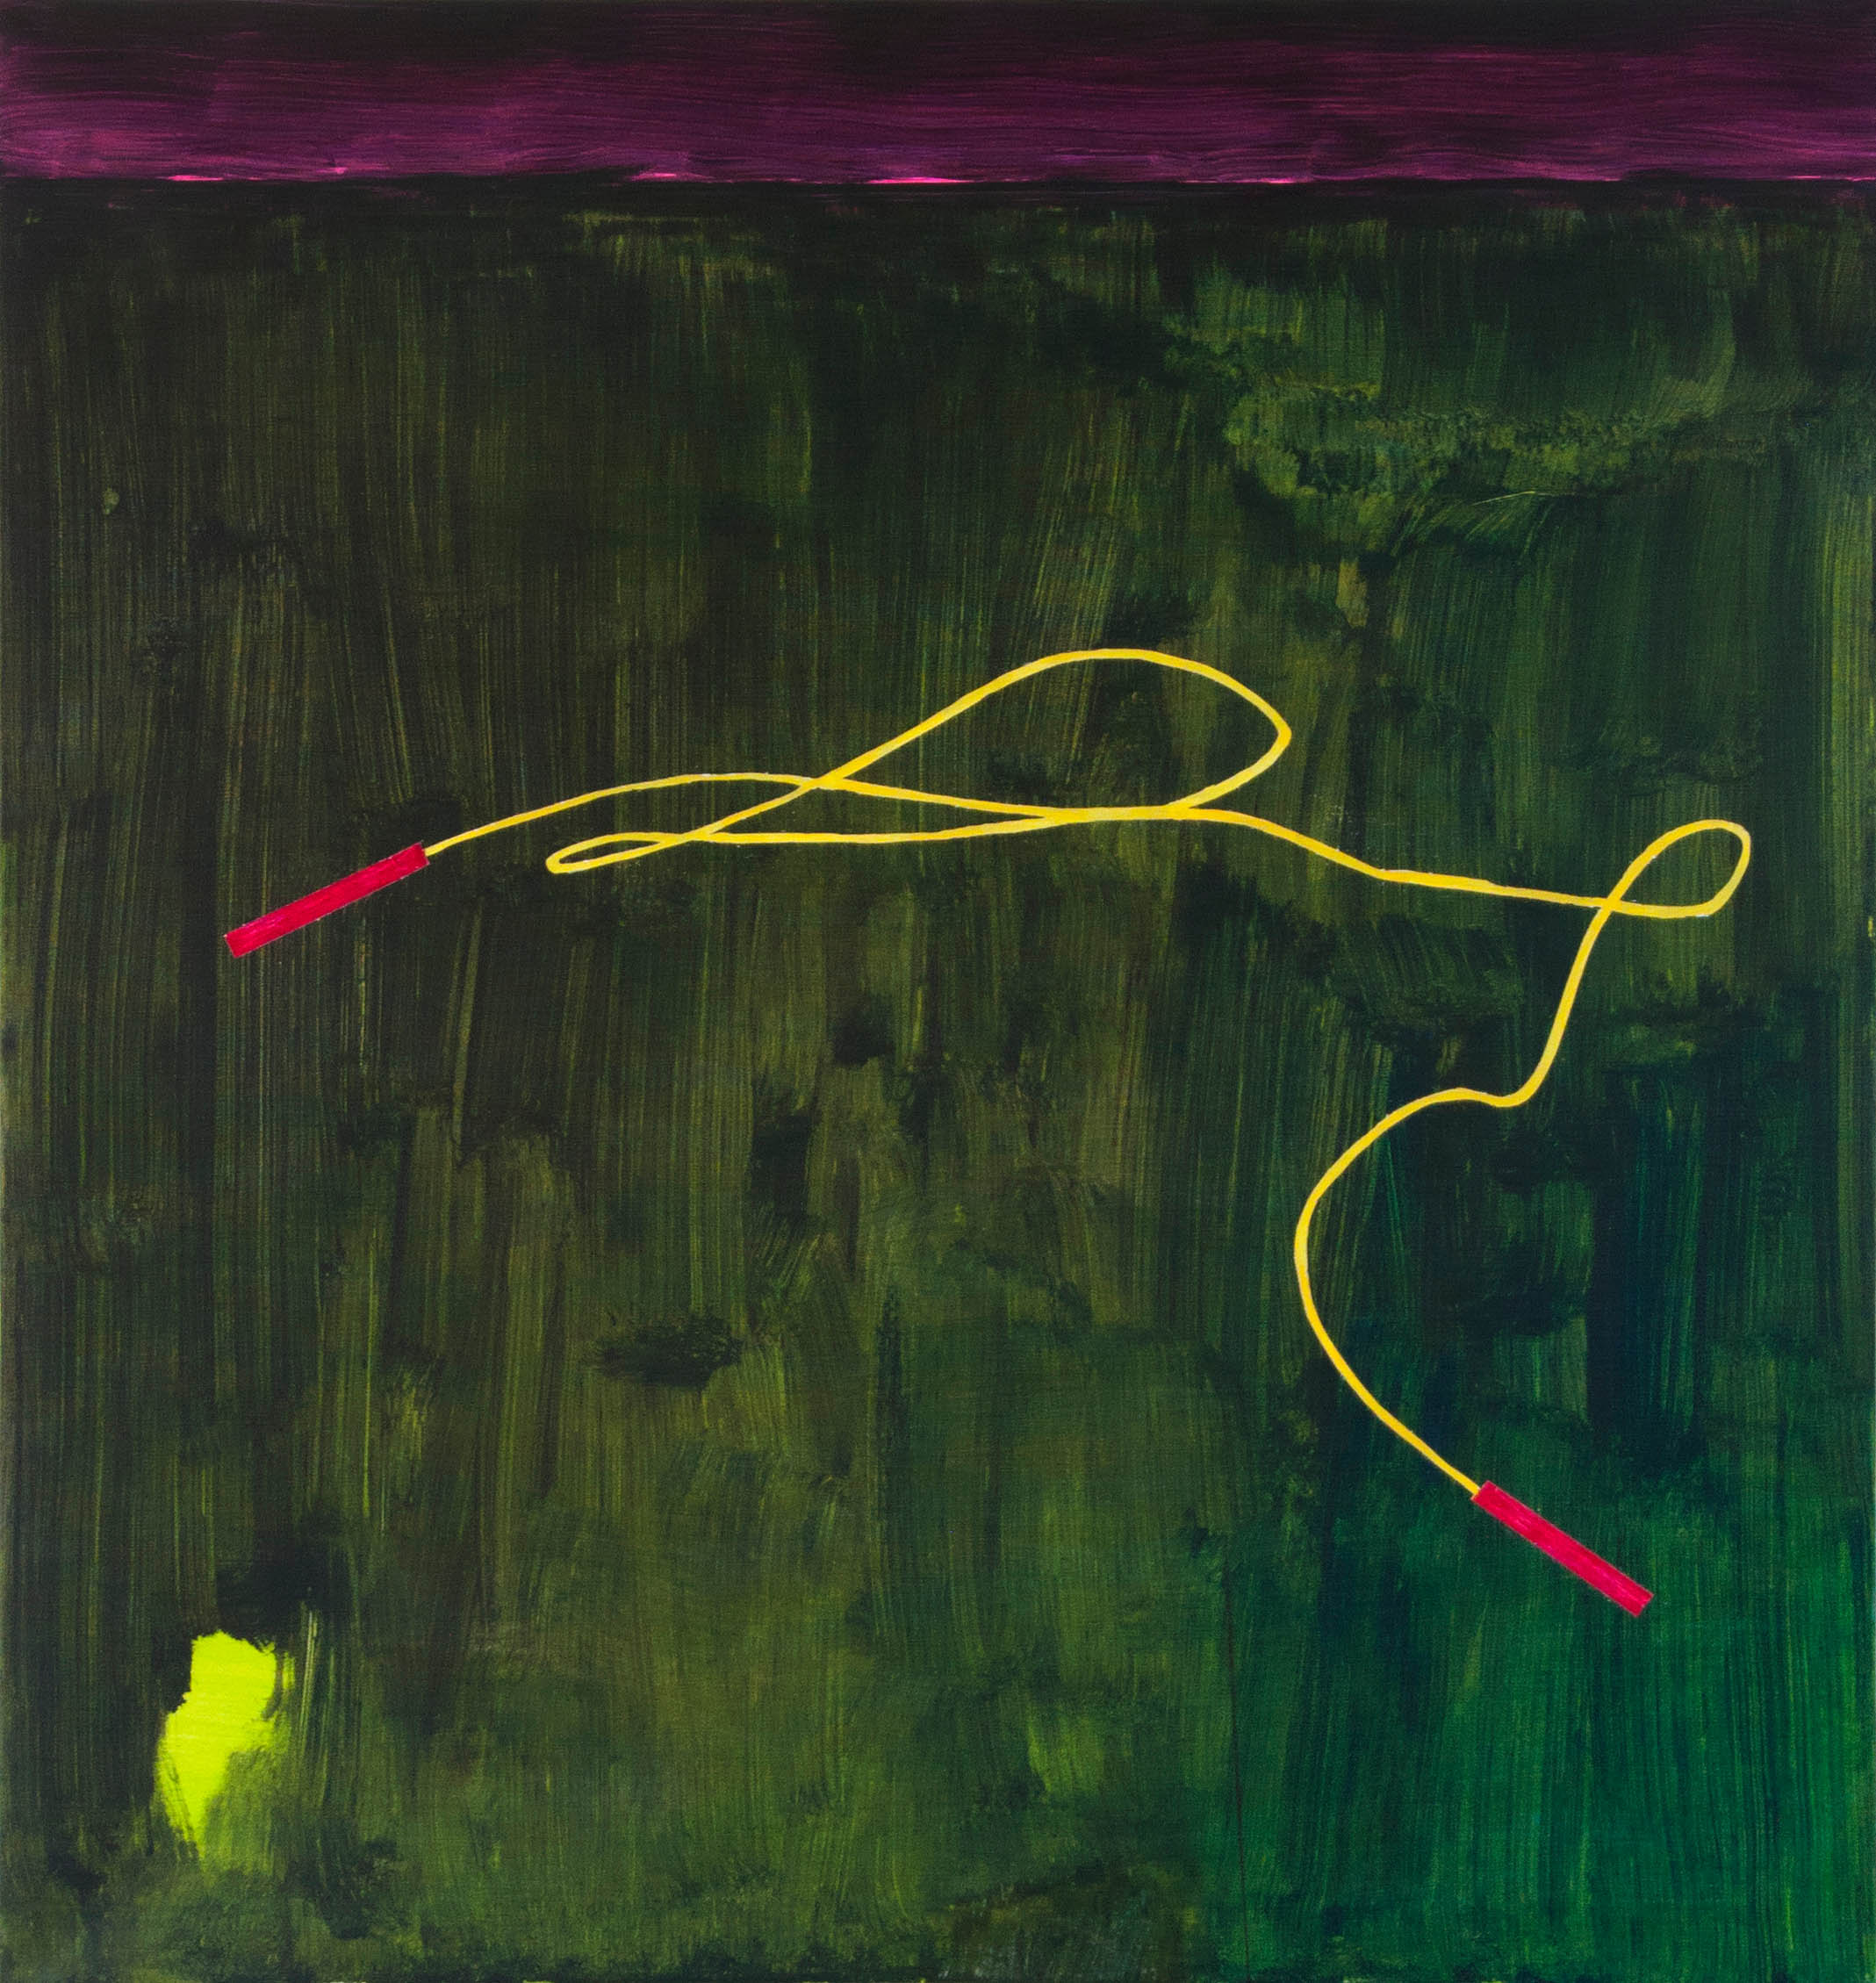 švihadlo – malé / jumping rope small, 95x100 cm, akryl na plátně / acrylic on canvas, 2015